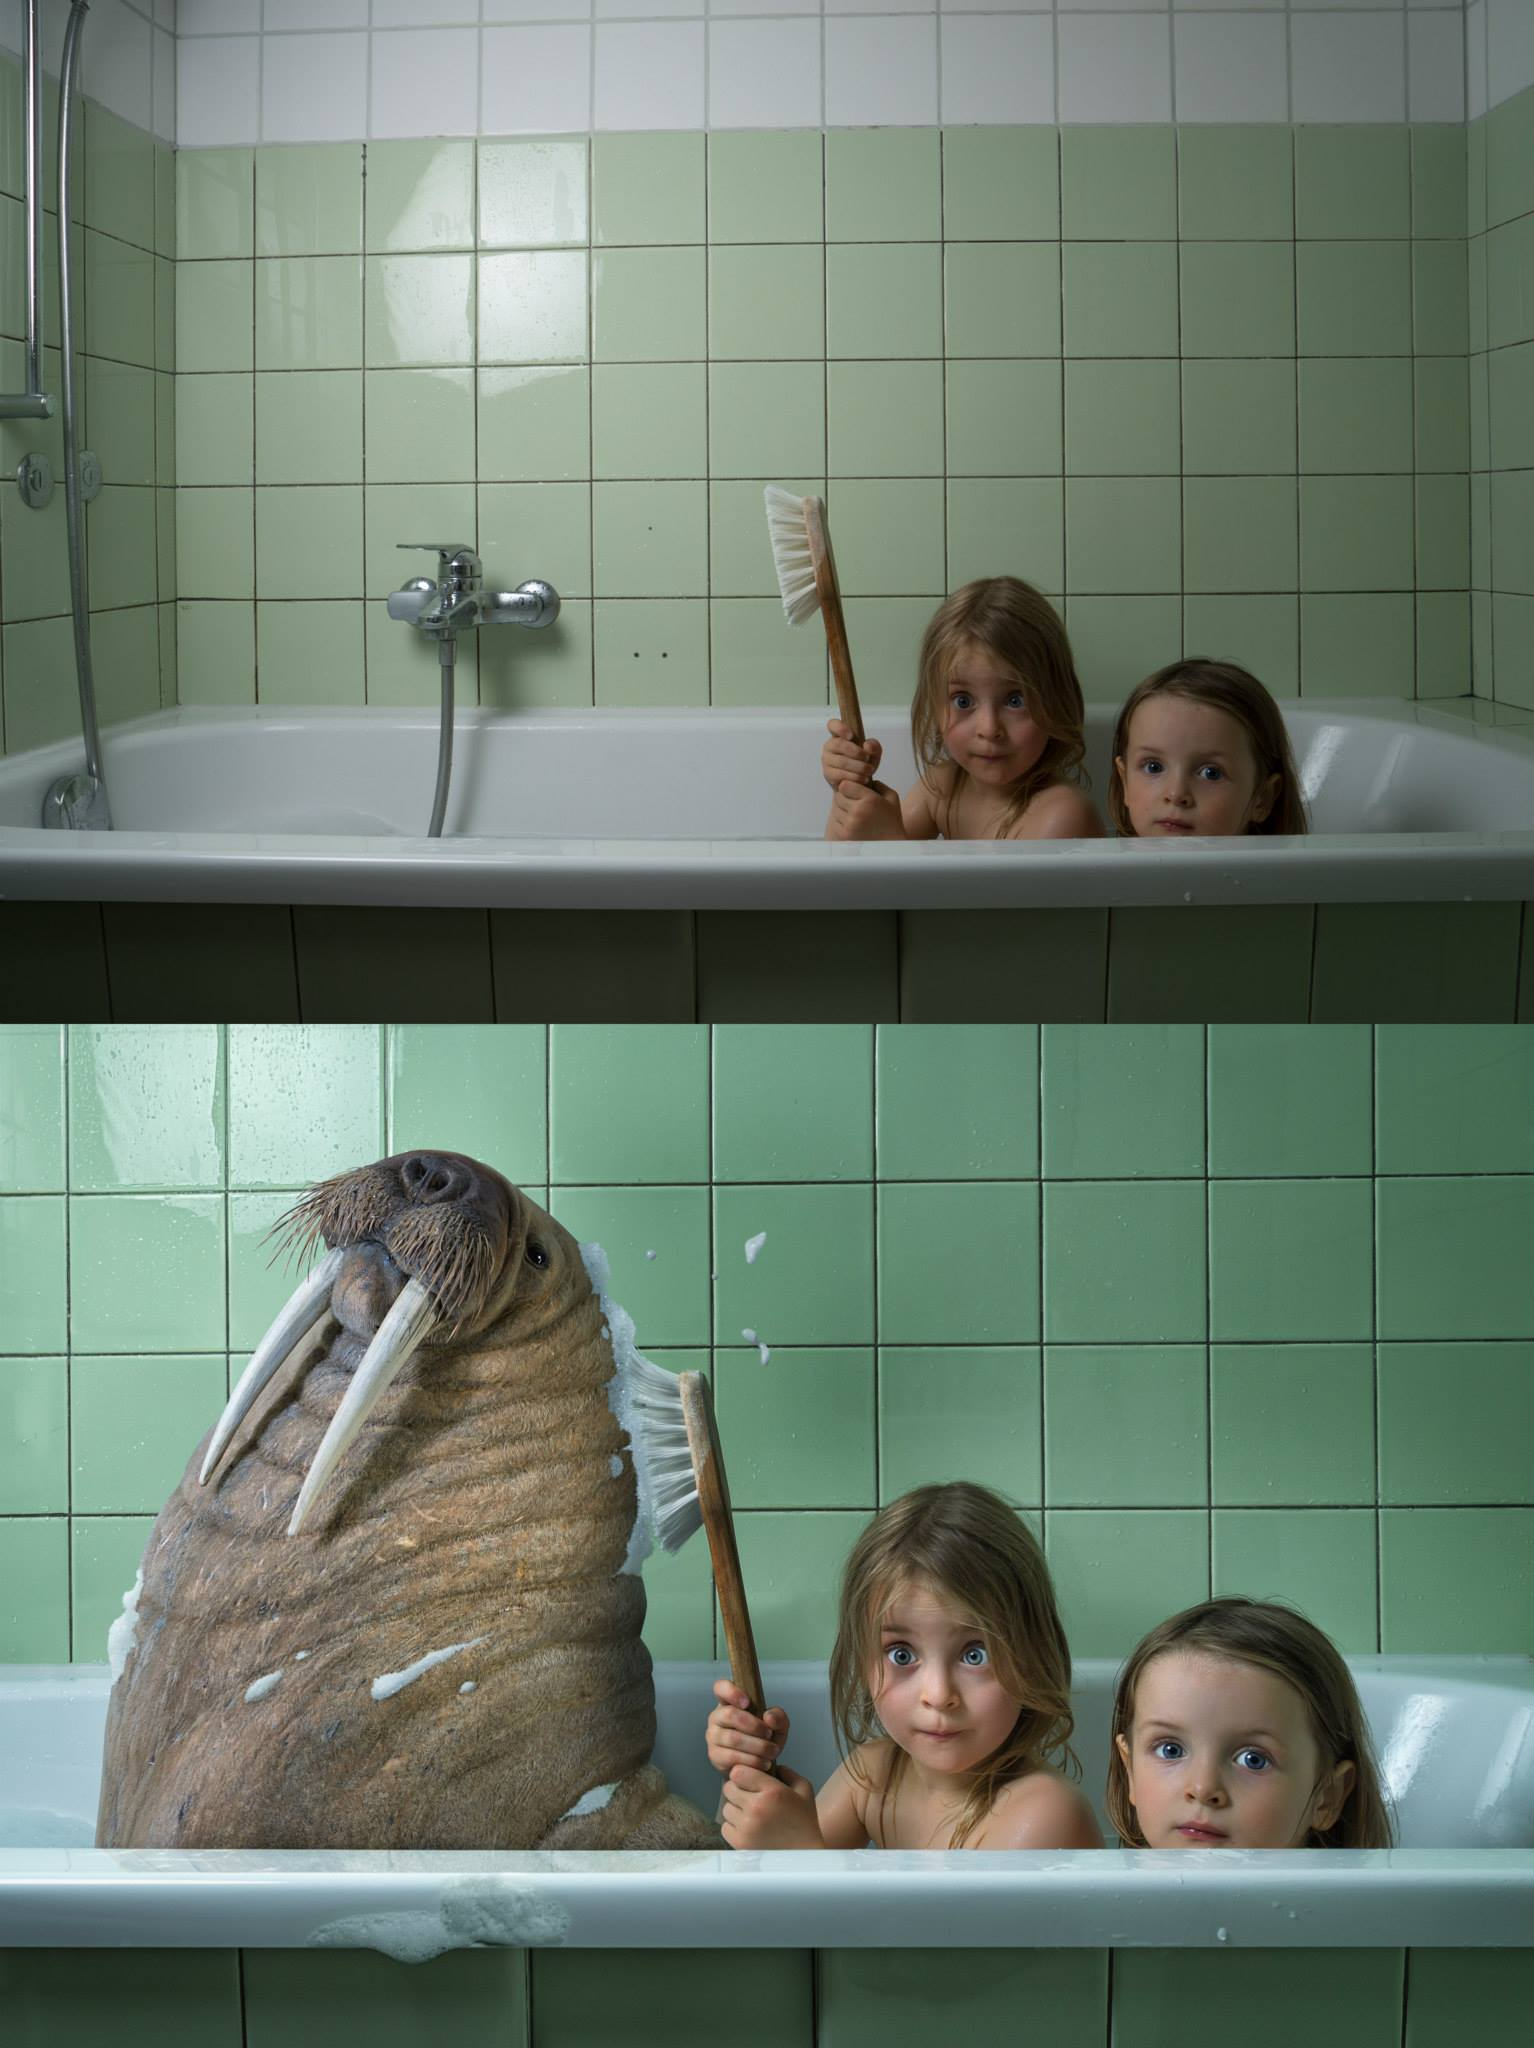 walrus before and after